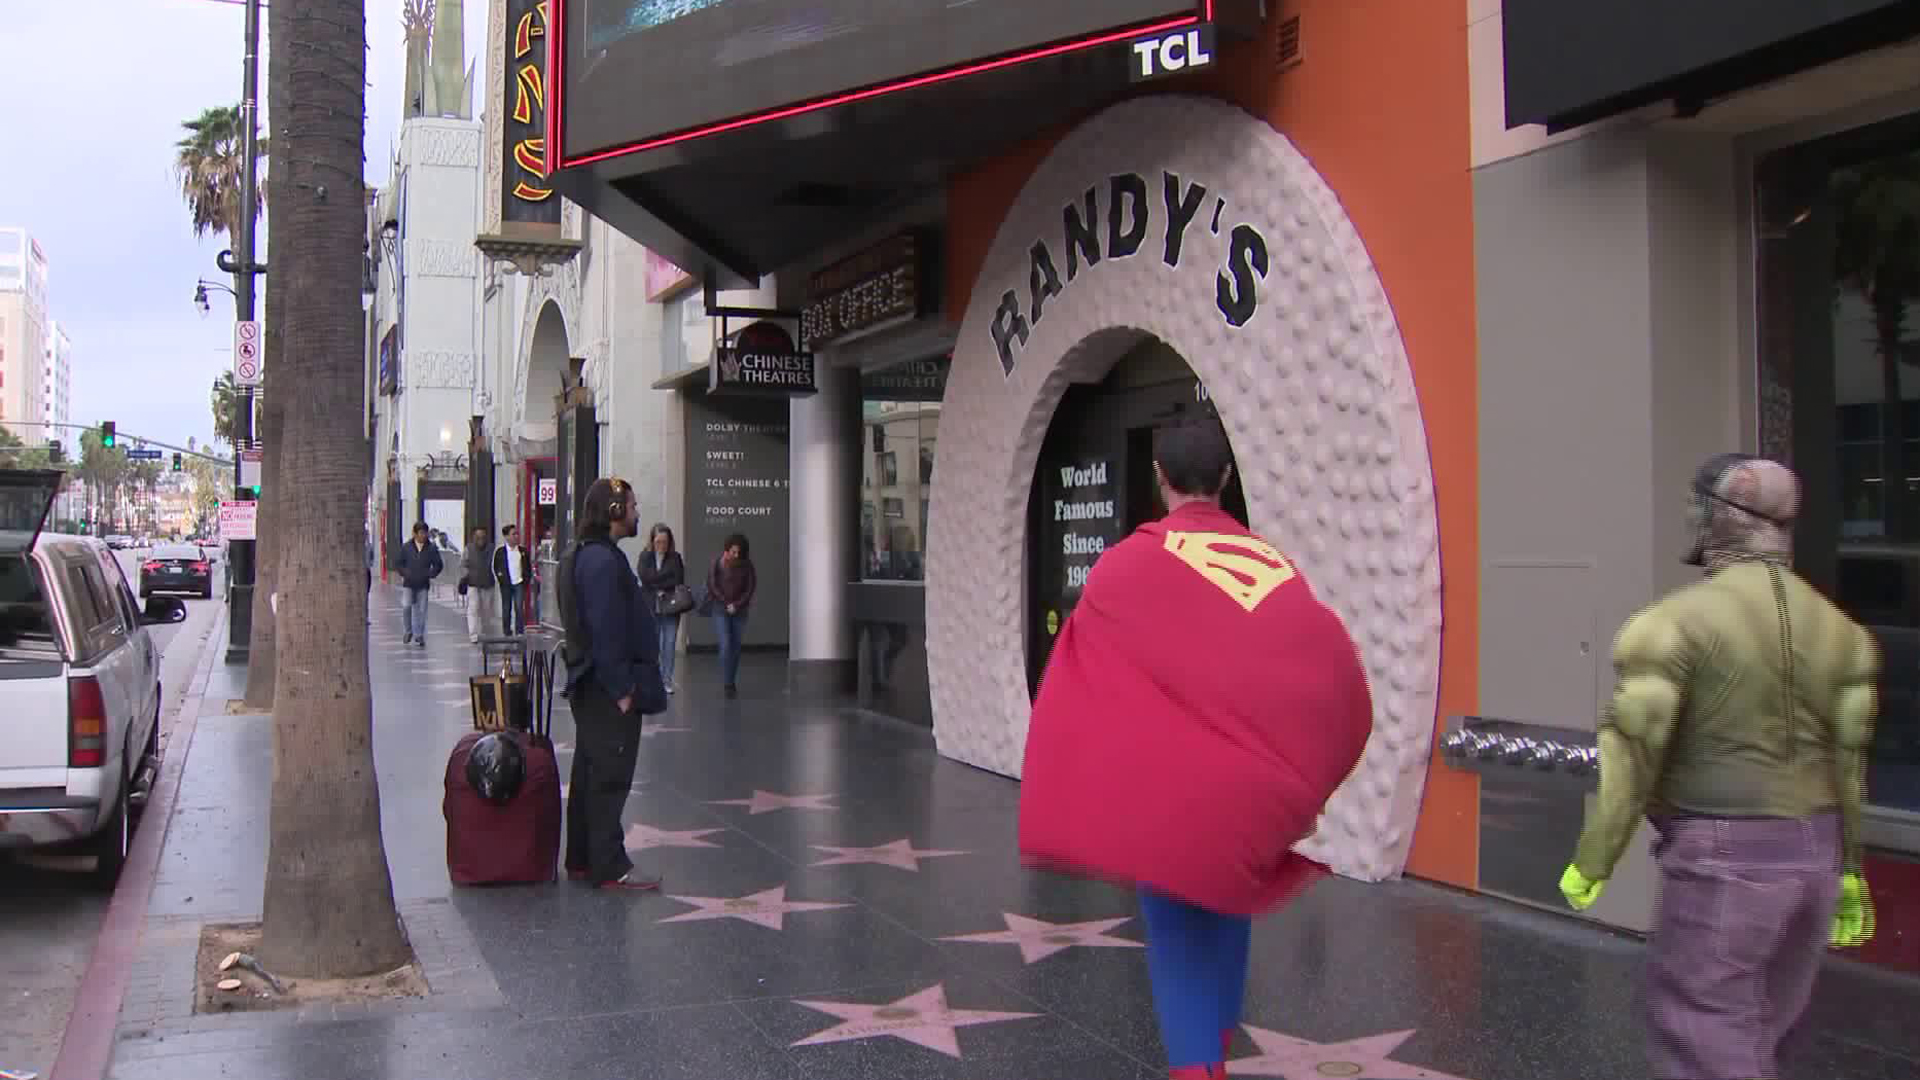 Two people dressed as Superman and the Hulk walk by Randy's Donuts in Hollywood on Dec. 10, 2018. (Credit: KTLA)